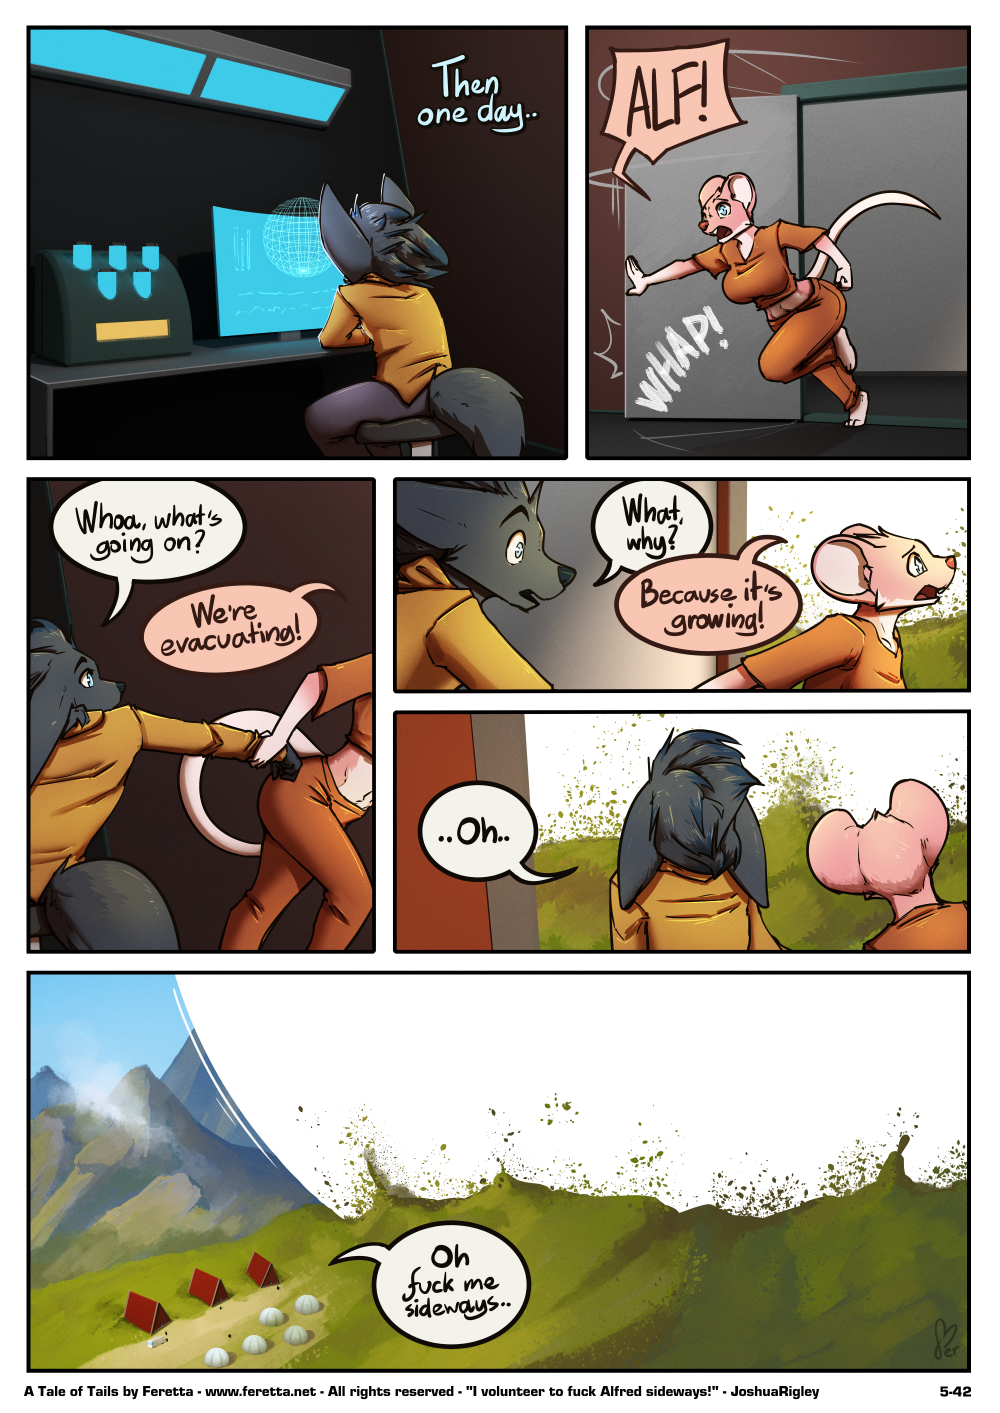 A Tale of Tails, 5-42